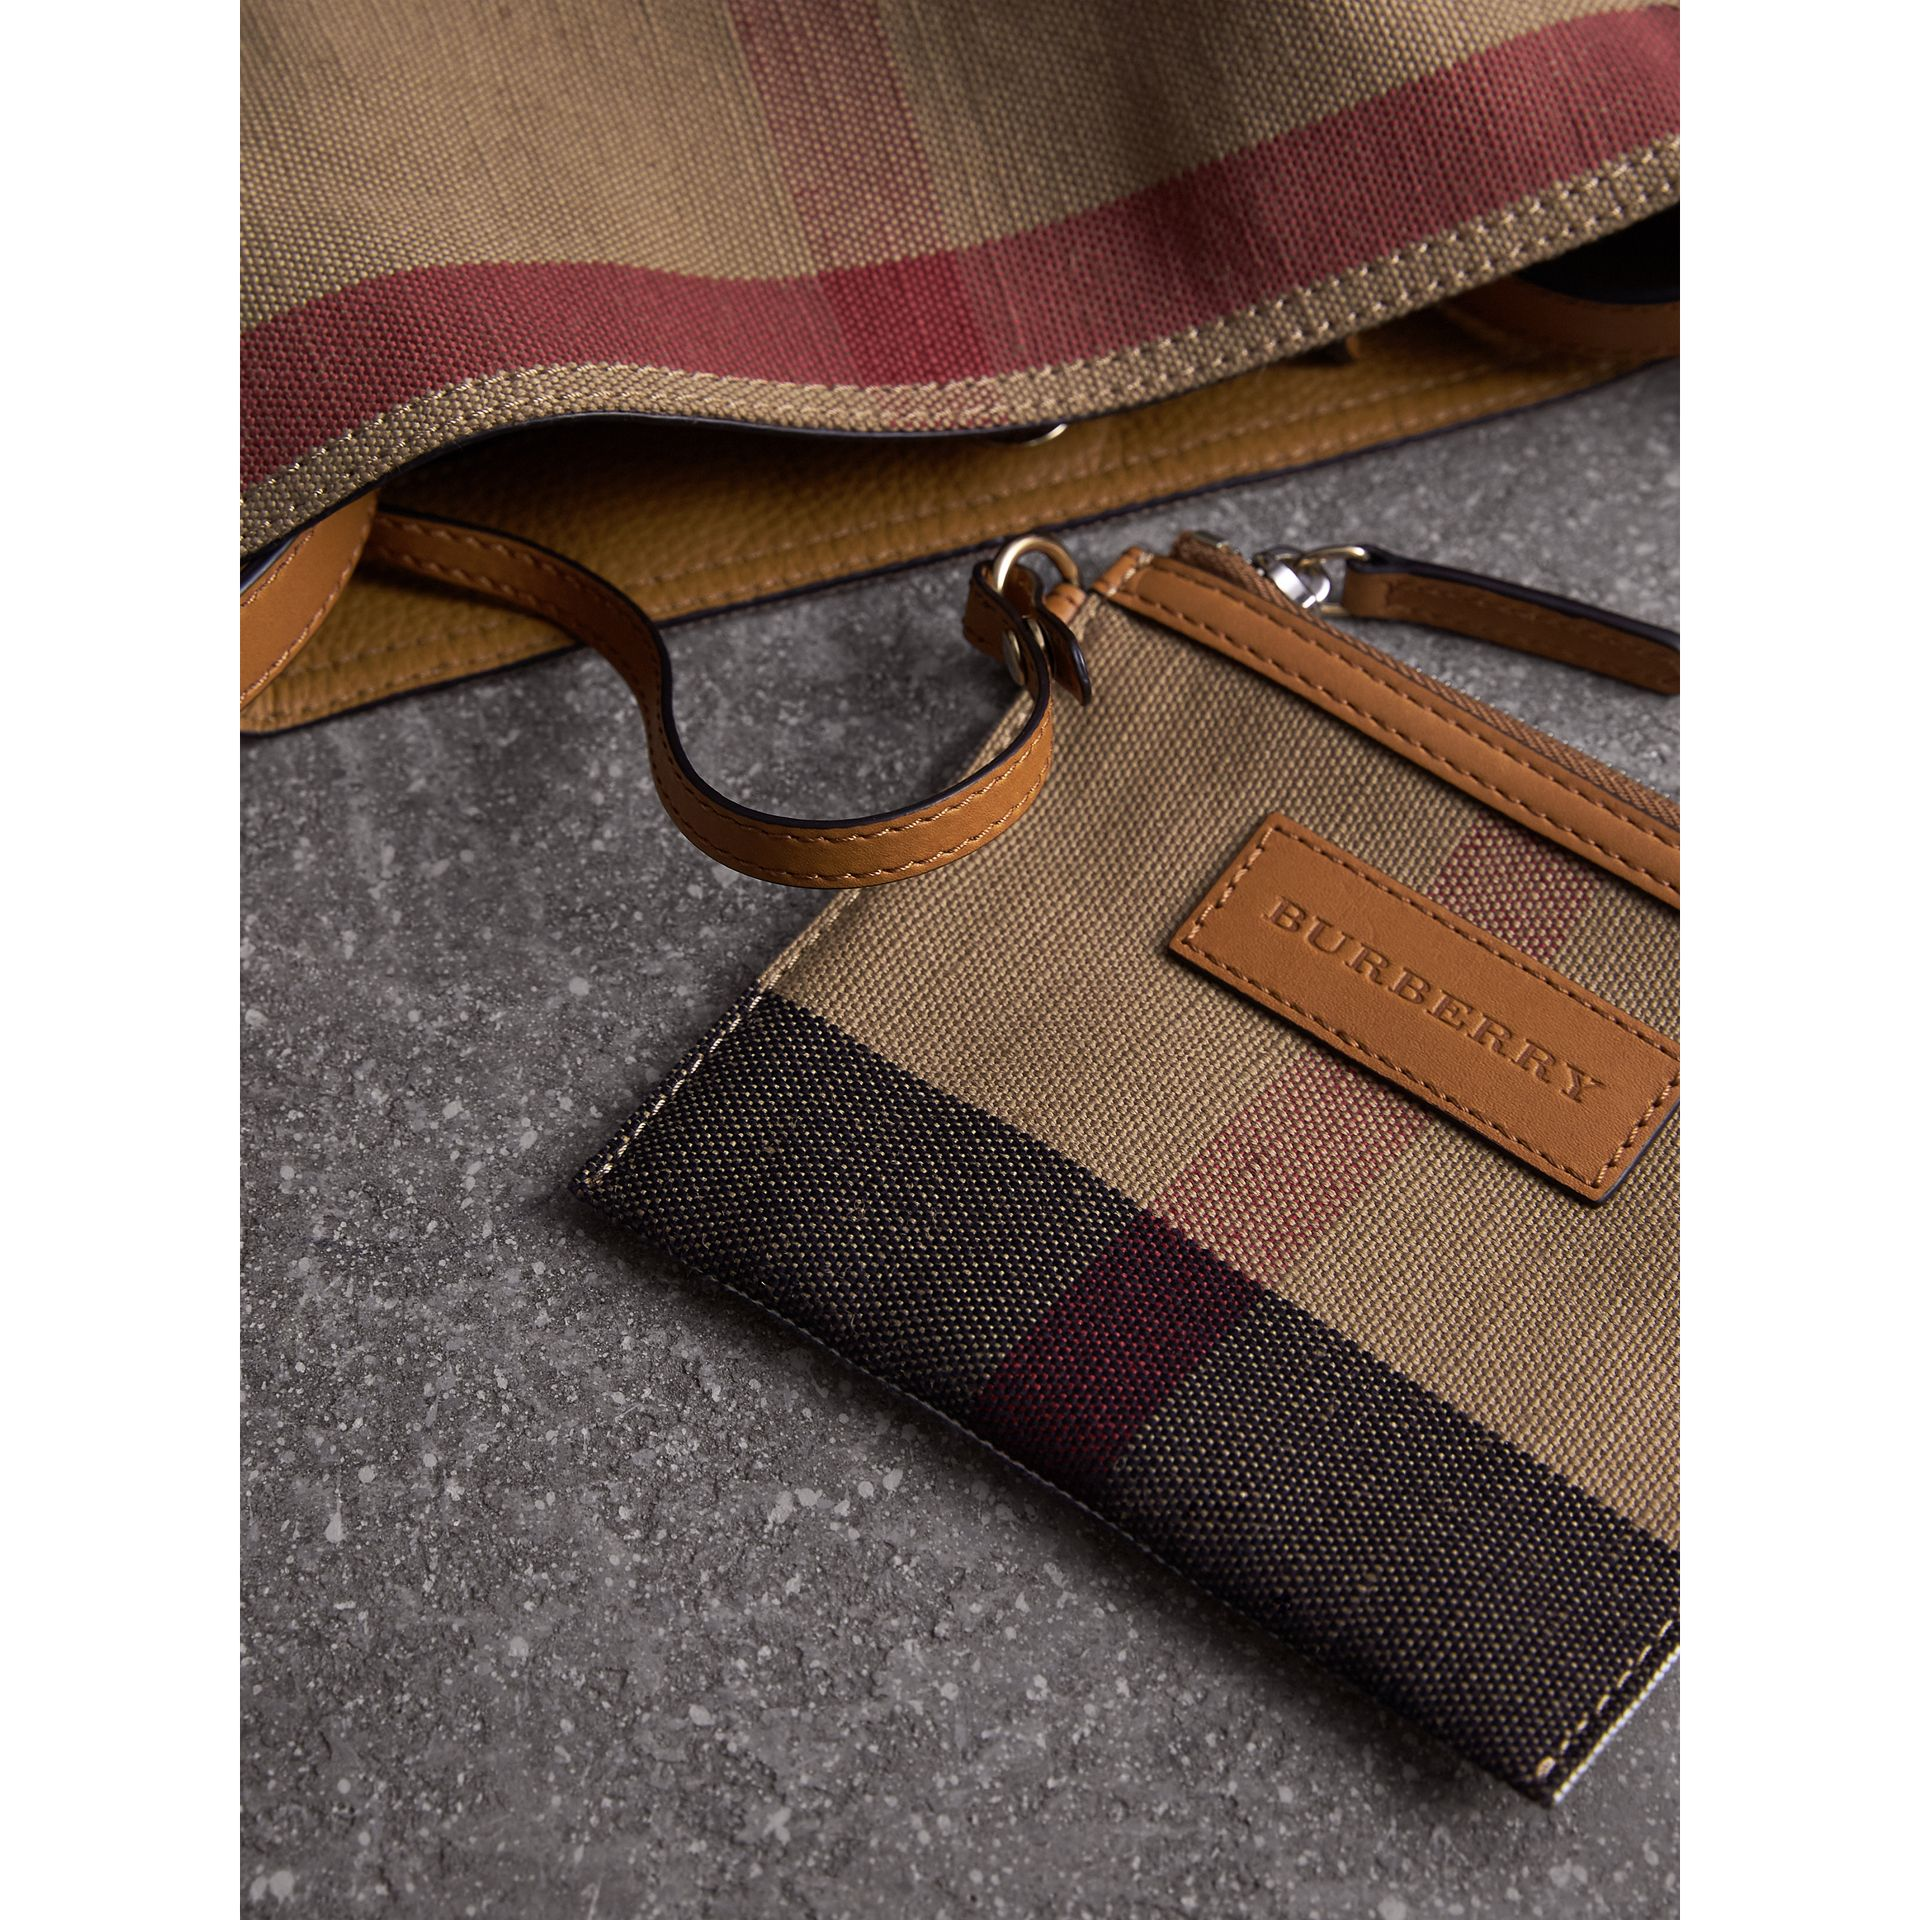 Petit sac The Ashby à motif Canvas check avec cuir (Marron Cigare) - Femme | Burberry - photo de la galerie 5